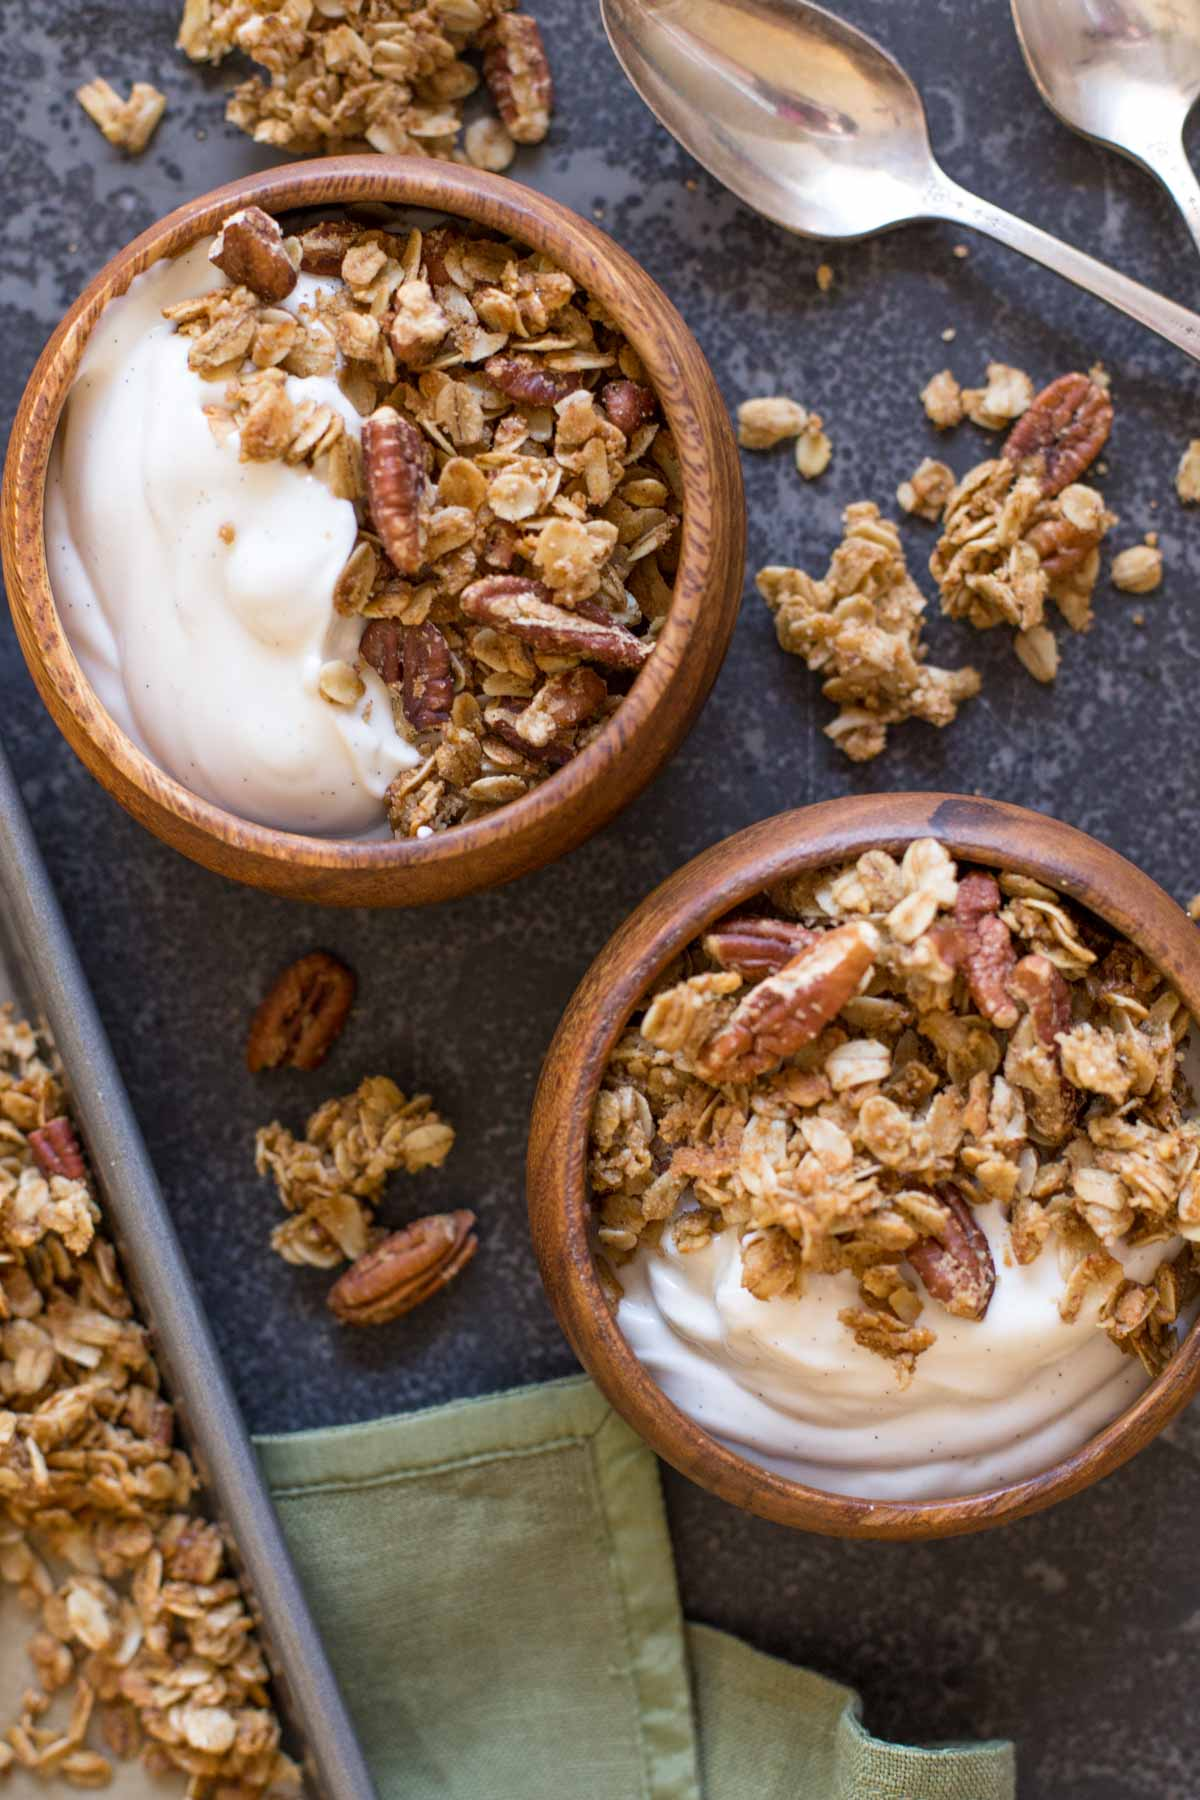 Two bowls of yogurt and Gingerbread Spice Granola.